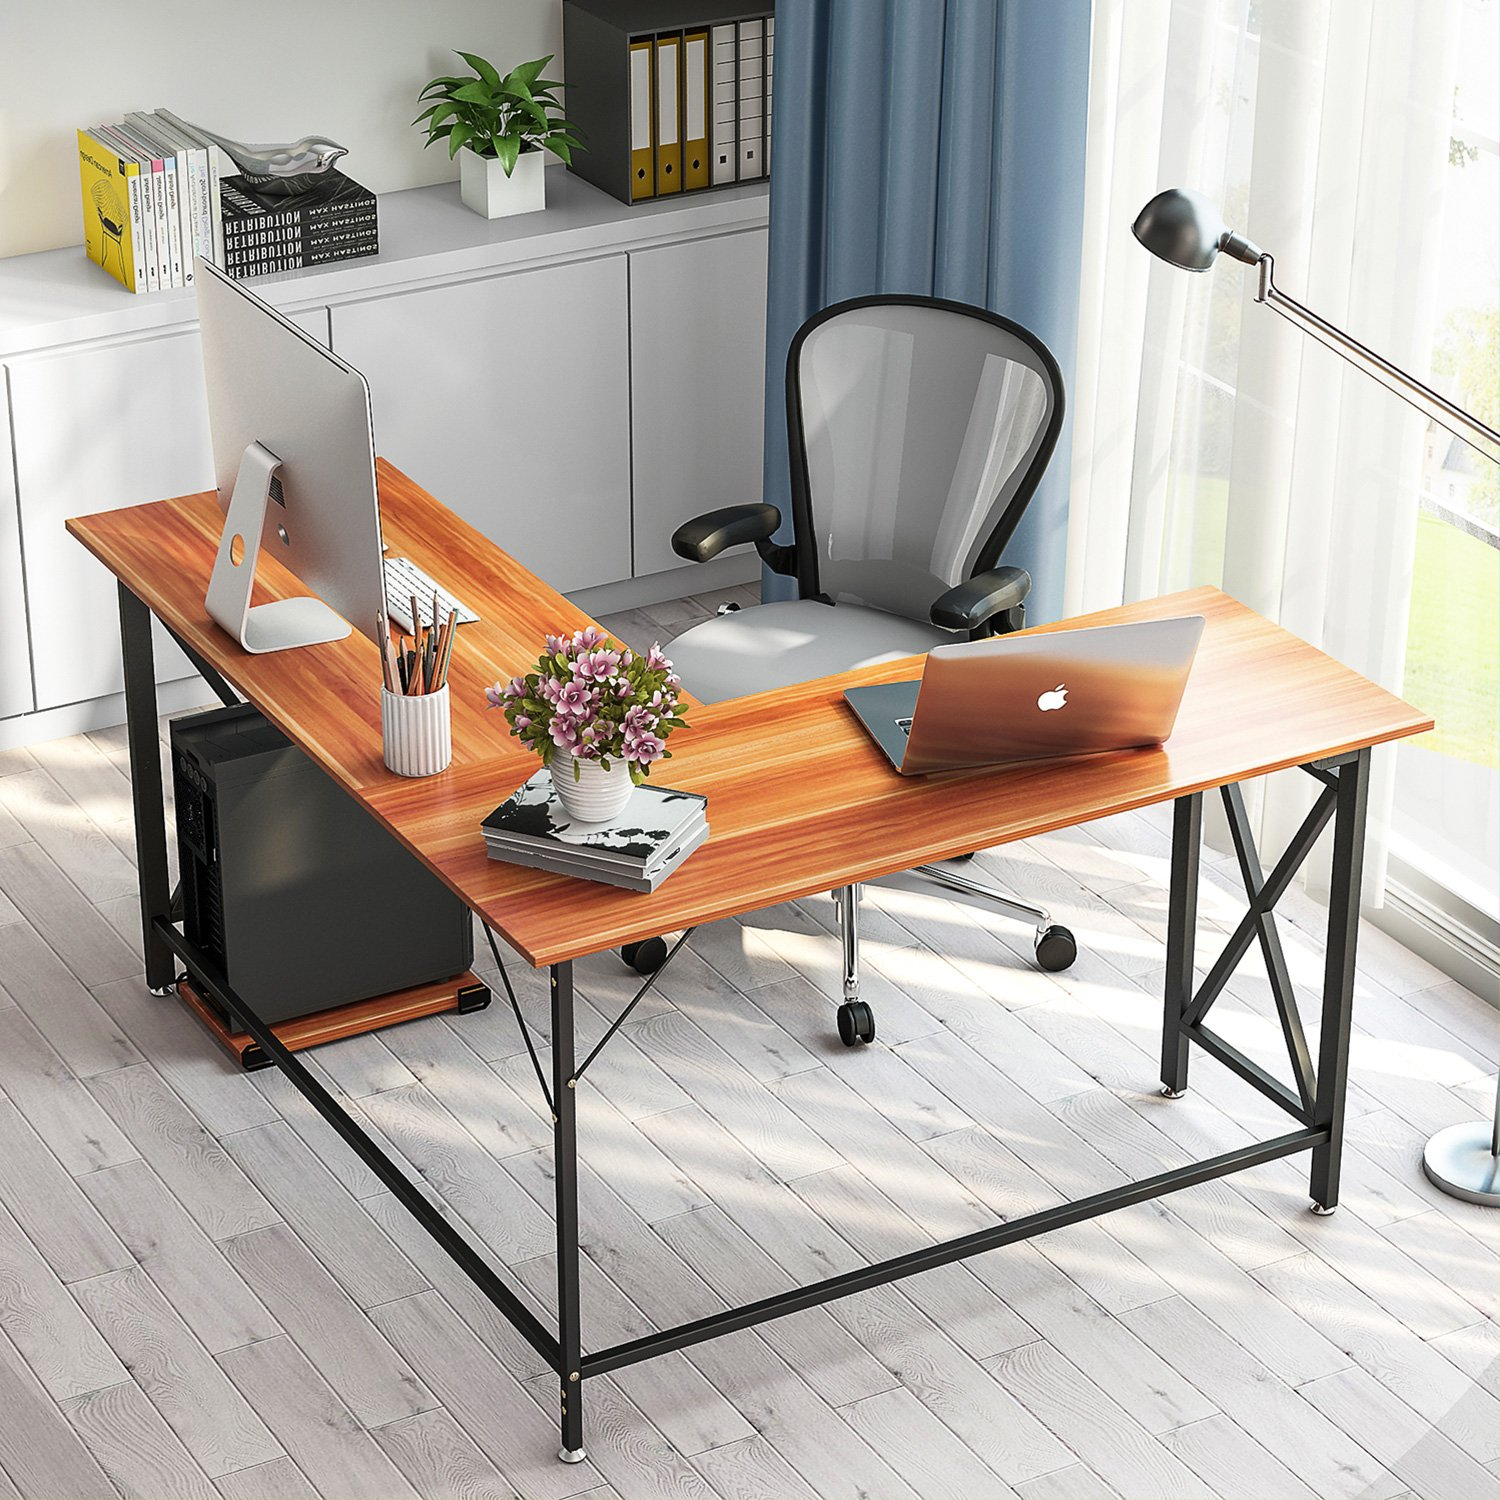 L-Shaped Computer Desk, LITTLE TREE 60'' Large Corner Desk PC Laptop Study Gaming Table Workstation with Sturdy X Metal Frame for Home Office, Rosewood